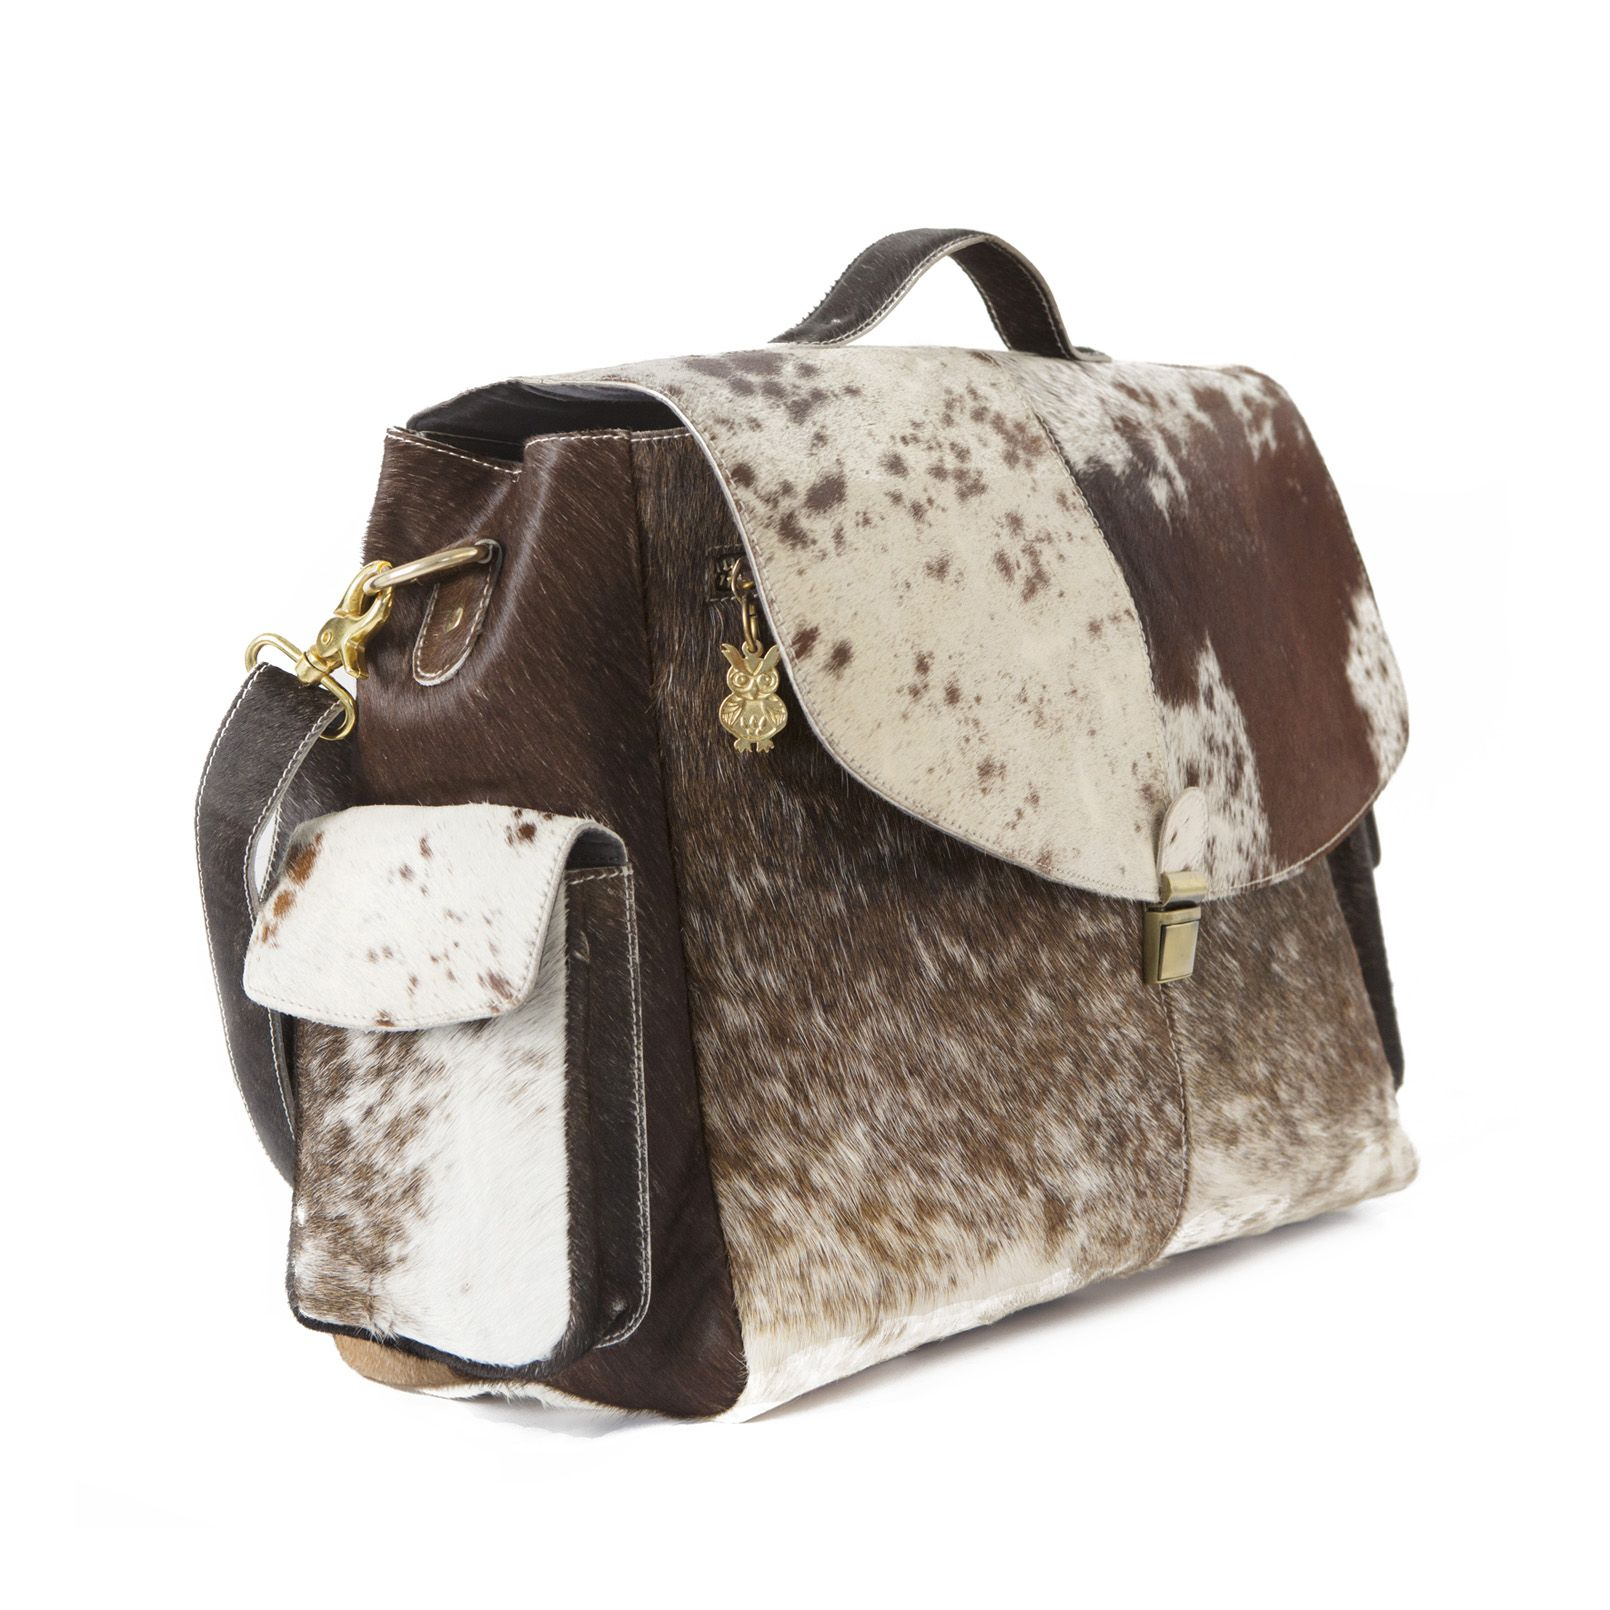 Cargo Brown Cream Hide Bankers Bag A Gorgeous Xl Carry All